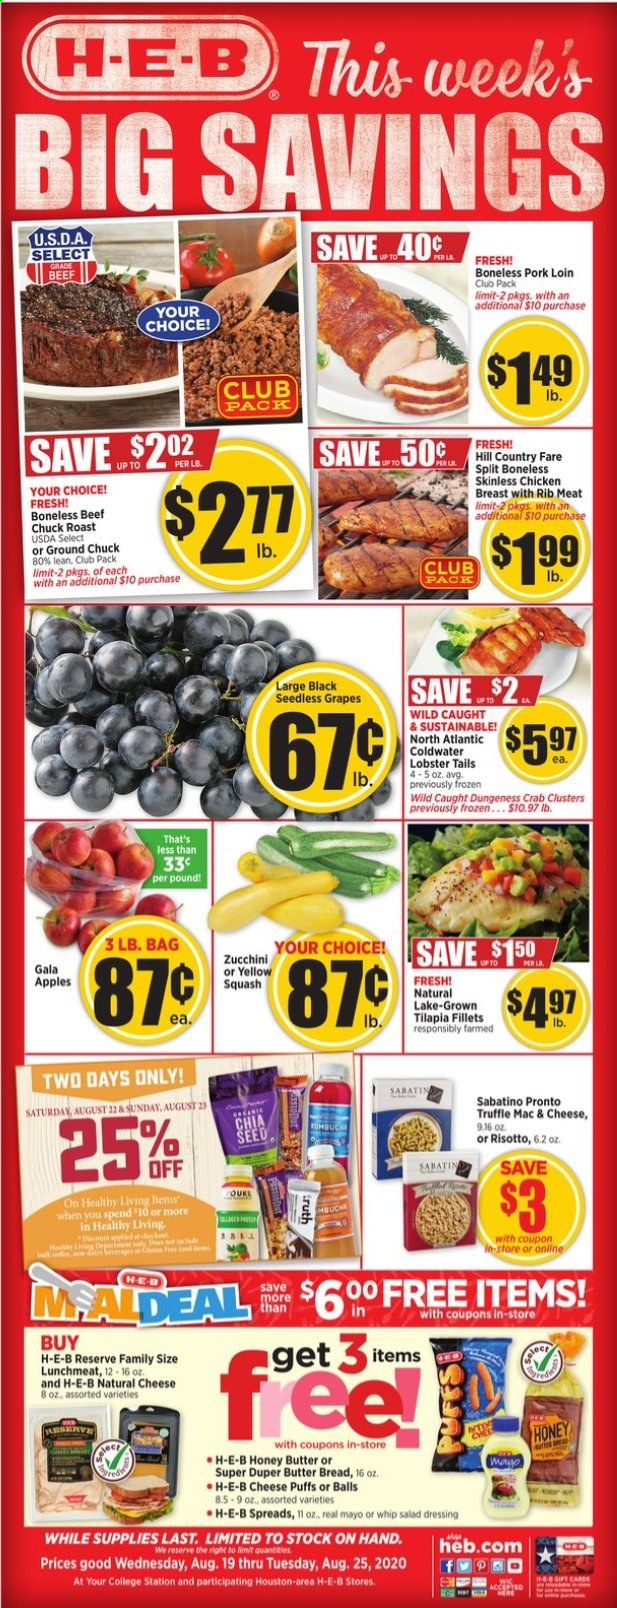 H-E-B Flyer - 08.19.2020 - 08.25.2020 - Sales products - squash, zucchini, Gala, grapes, seedless grapes, AVG, bread, puffs, lobster, tilapia, crab, lobster tail, macaroni & cheese, risotto, salad, lunch meat, cheese, butter, truffles, dressing, salad dressing, honey, chicken, chicken breast, beef meat, ground chuck, pork loin, pork meat, Frozen, seed. Page 1.